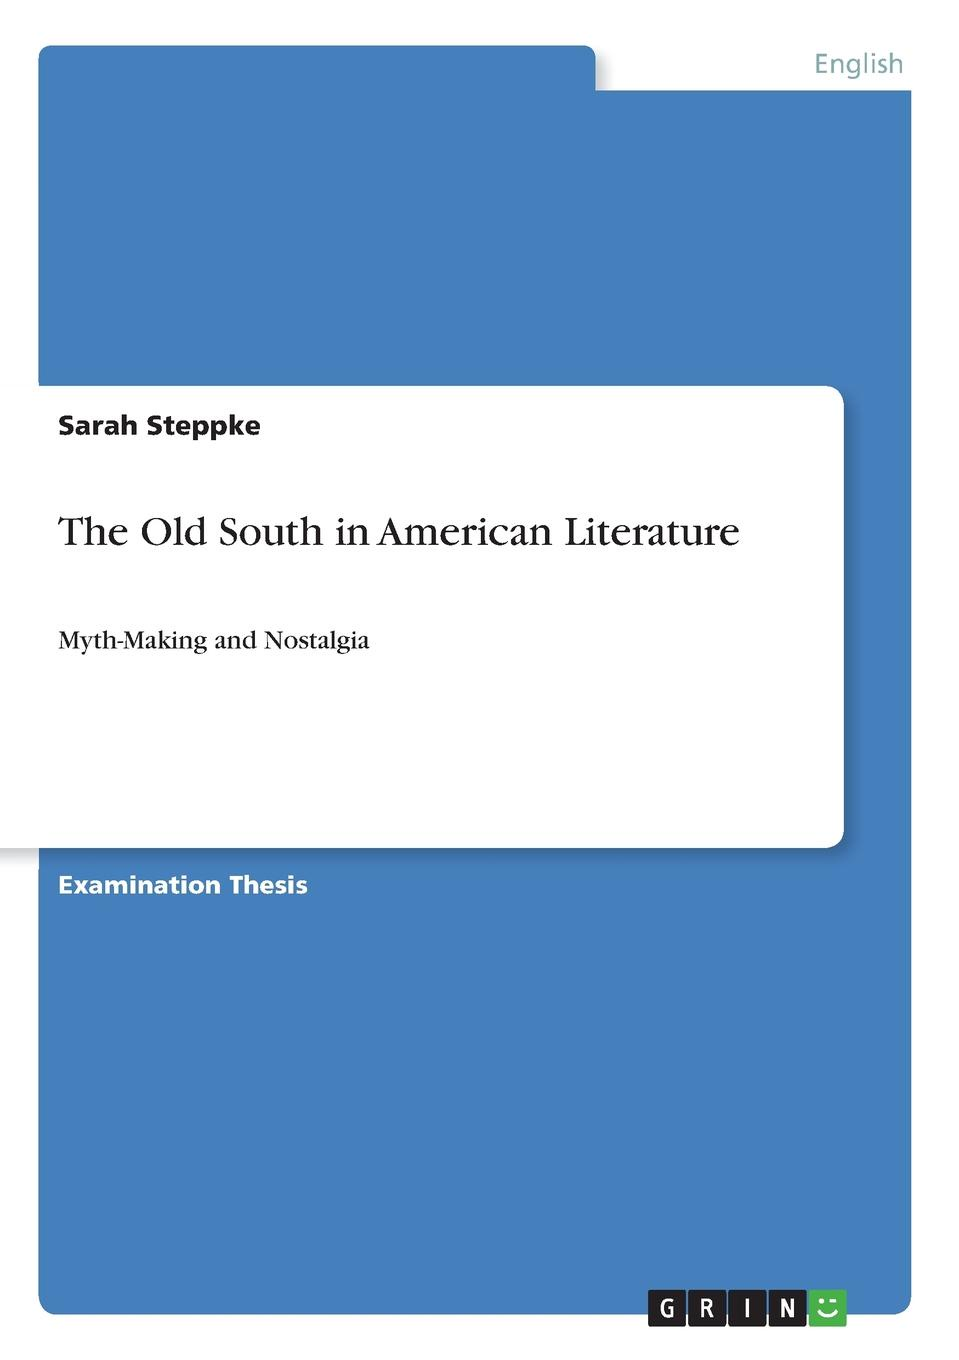 Sarah Steppke The Old South in American Literature the anatomy of myth